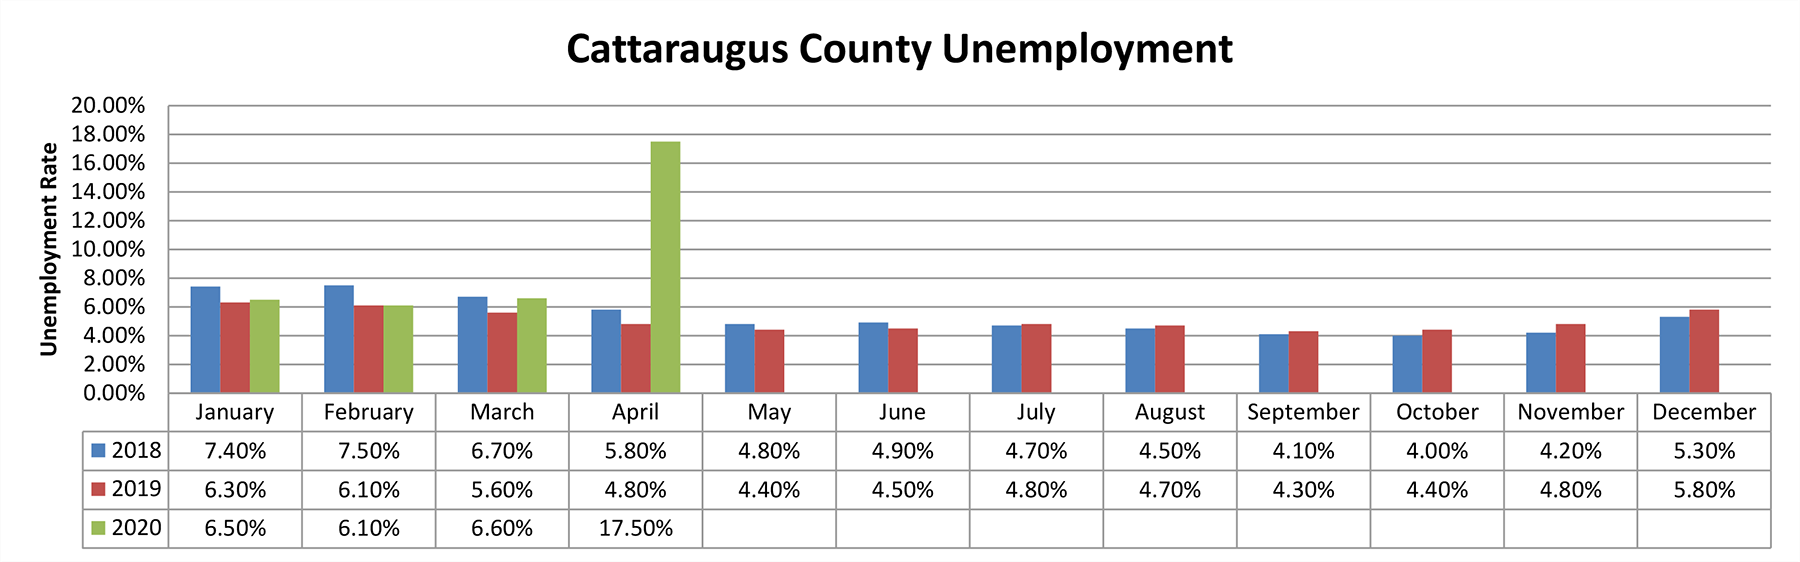 Chart comparing Unemployment in Cattaraugus County for the years 2018 to 2020